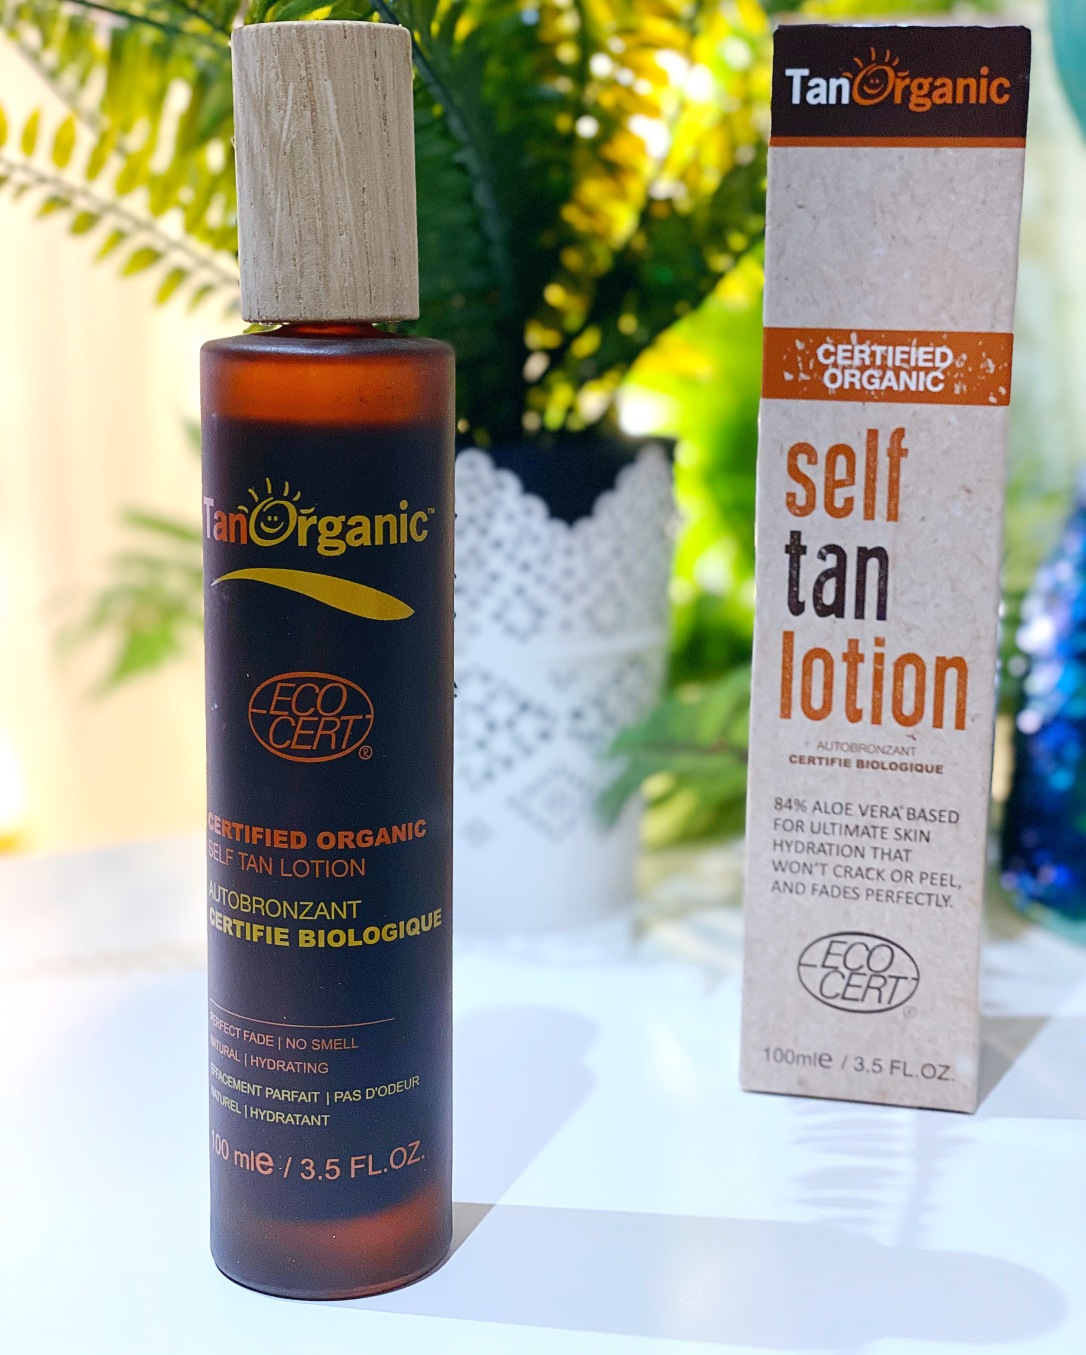 tan organic ALCHEMY BY AMY UK My Clean/Non Toxic False Tan Collection PARABEN FREE CRUELTY FREE VEGAN ORGANIC FAKE TAN FALSE TAN SELF TAN SUNLESS TANNER